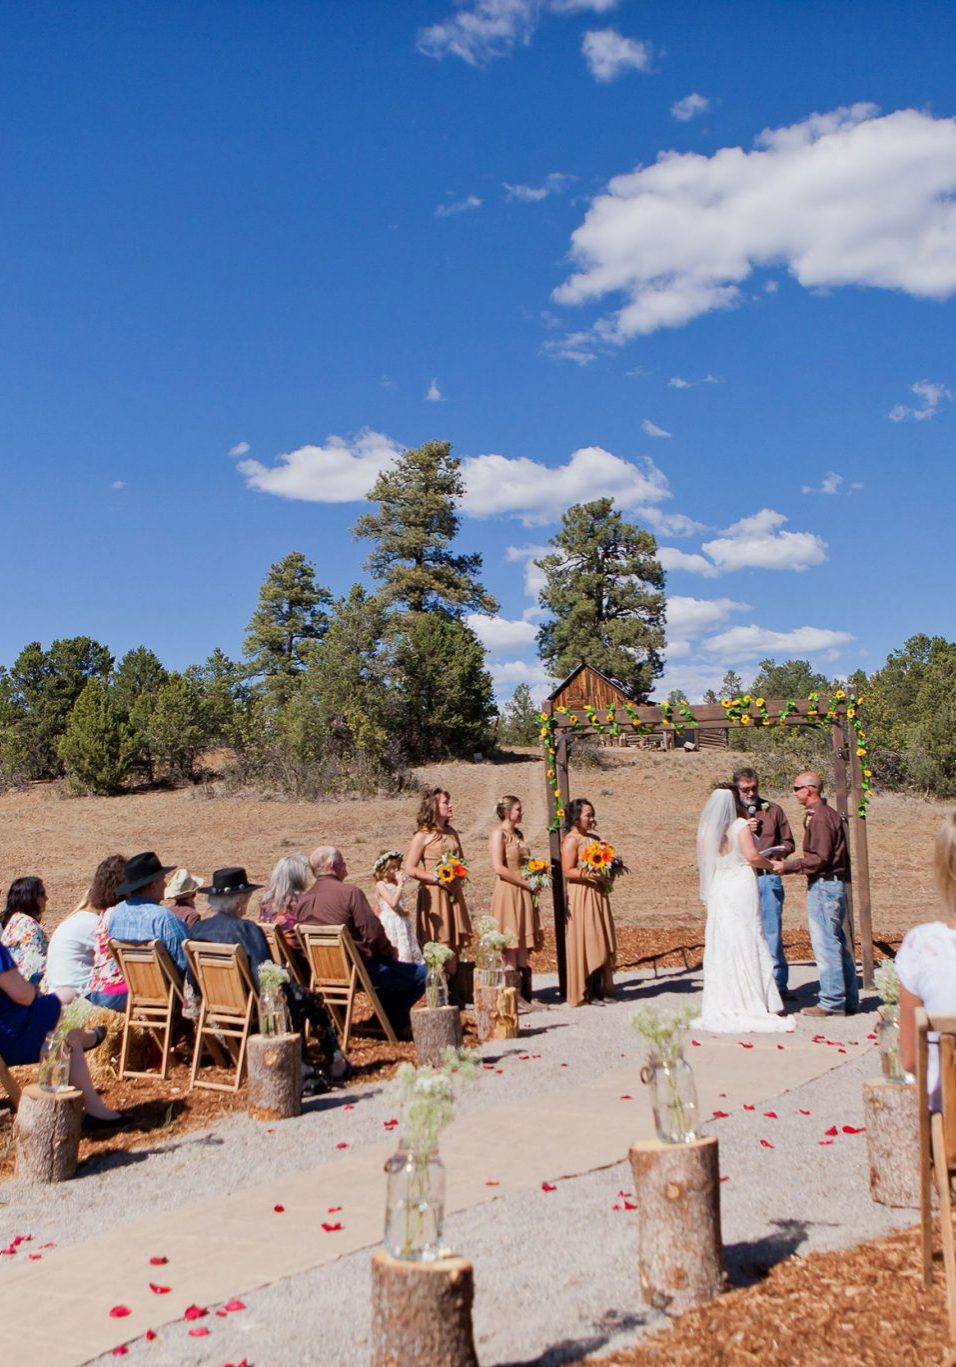 Bridesmaids at Reising Stage wedding venue | Durango Weddings Magazine